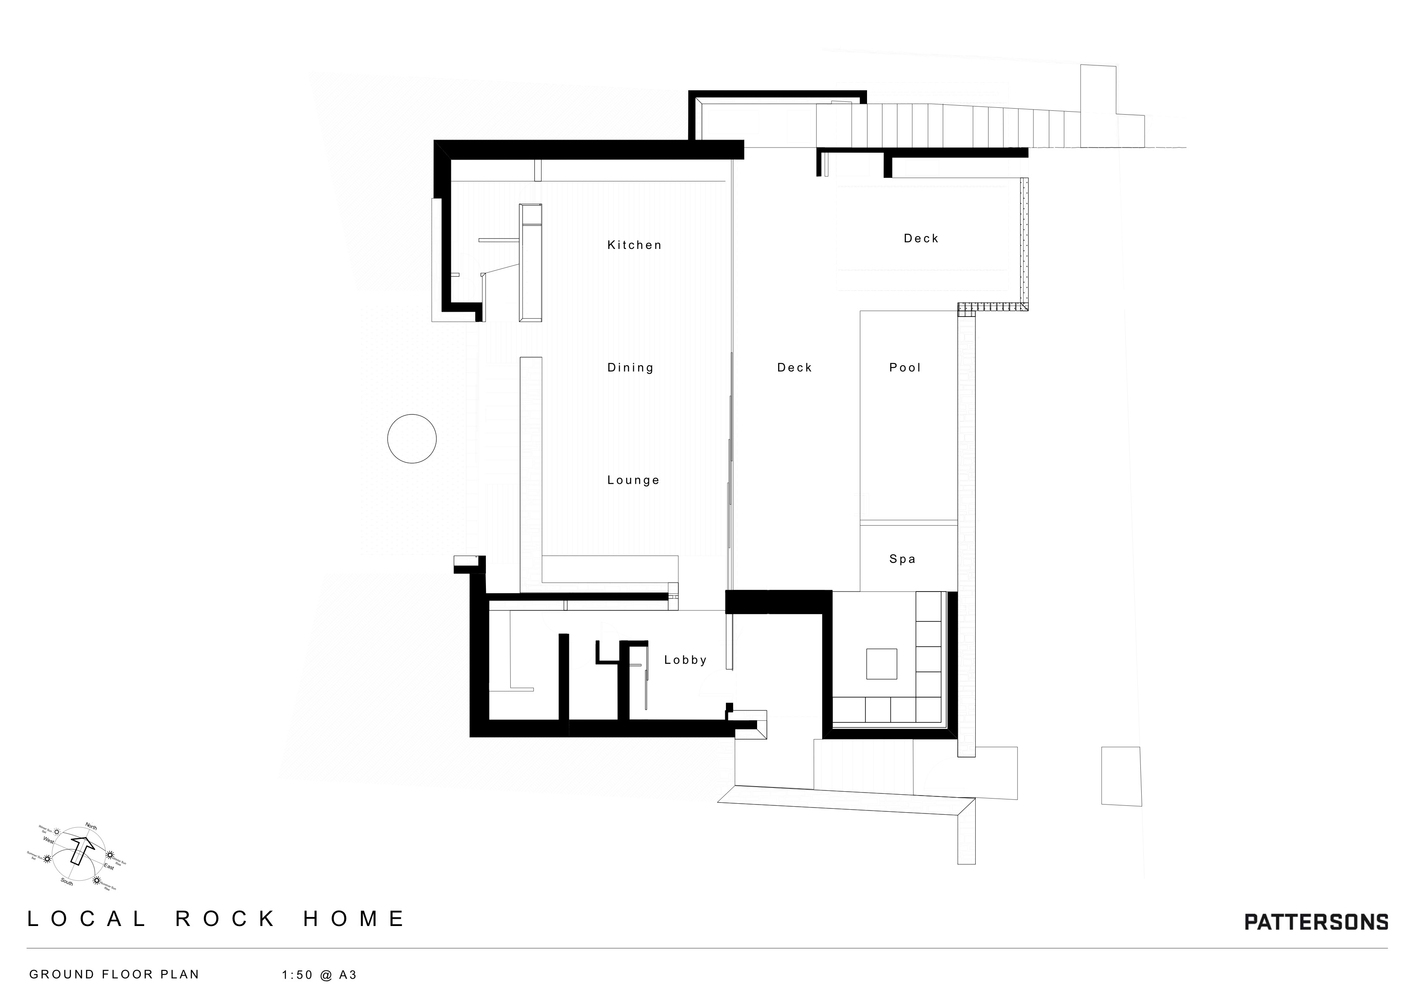 local rock houseground floor plan - Rock House Plans